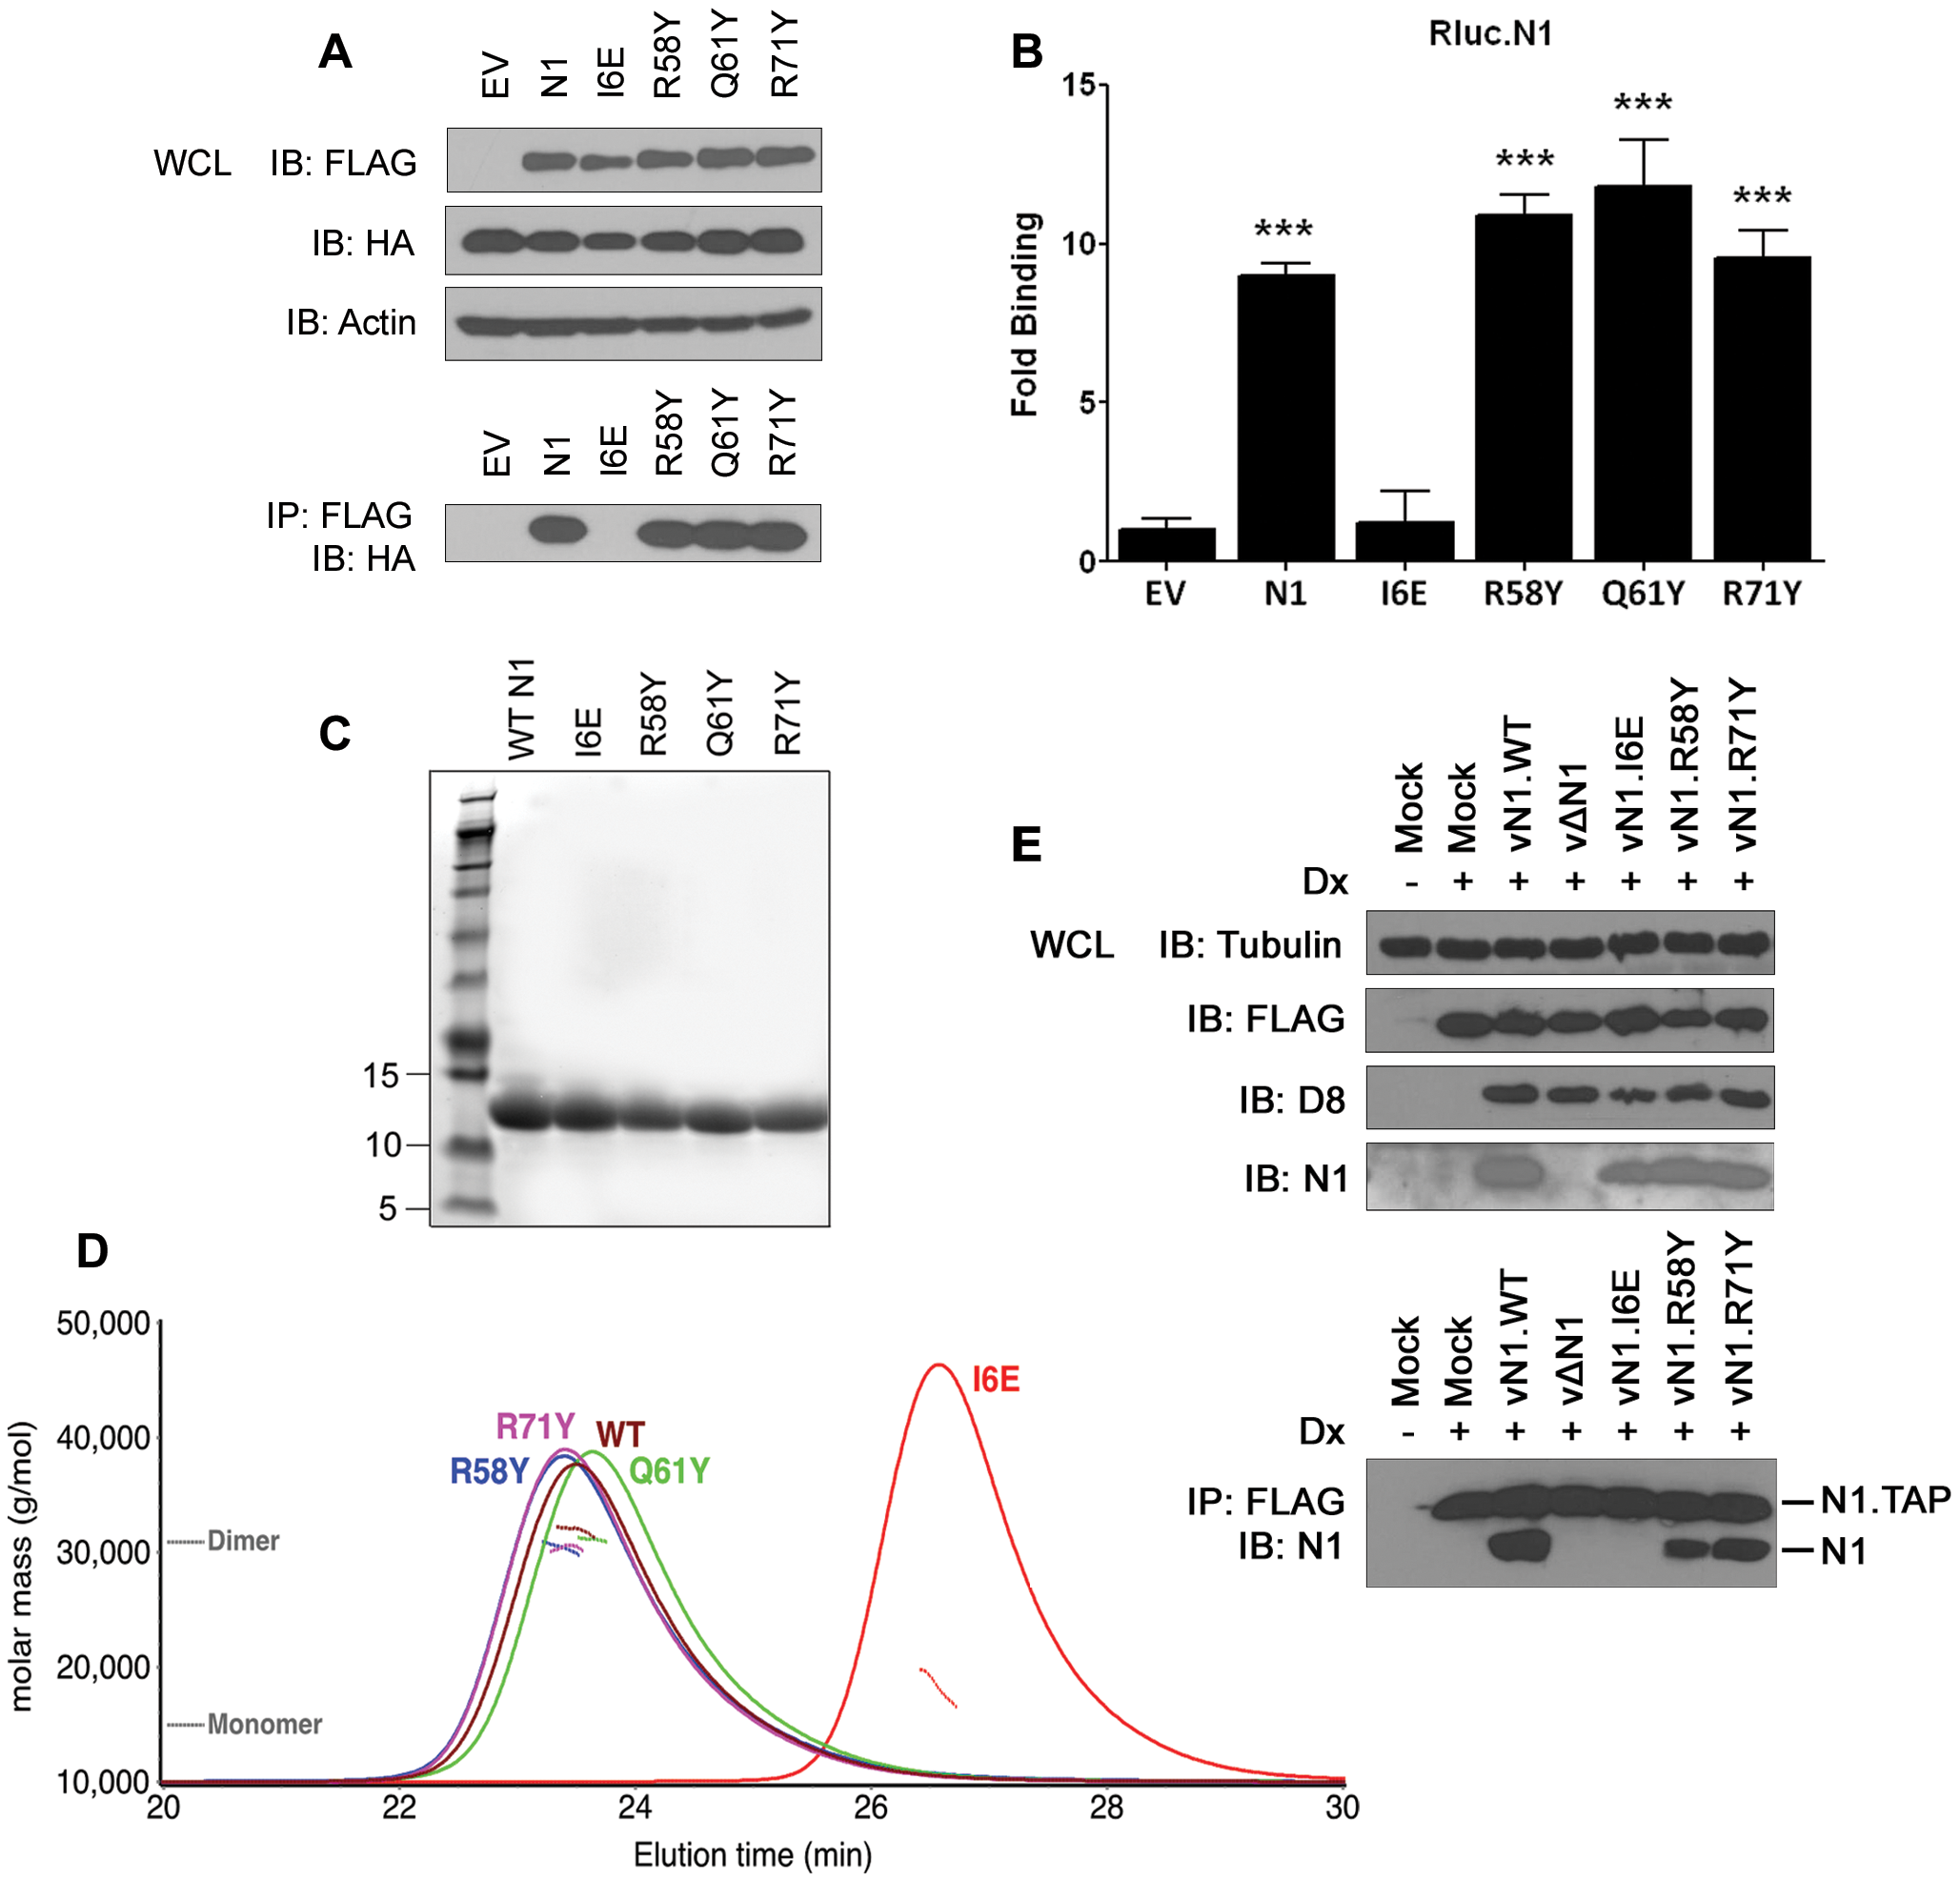 Biochemical and biophysical characterization of mutant N1.